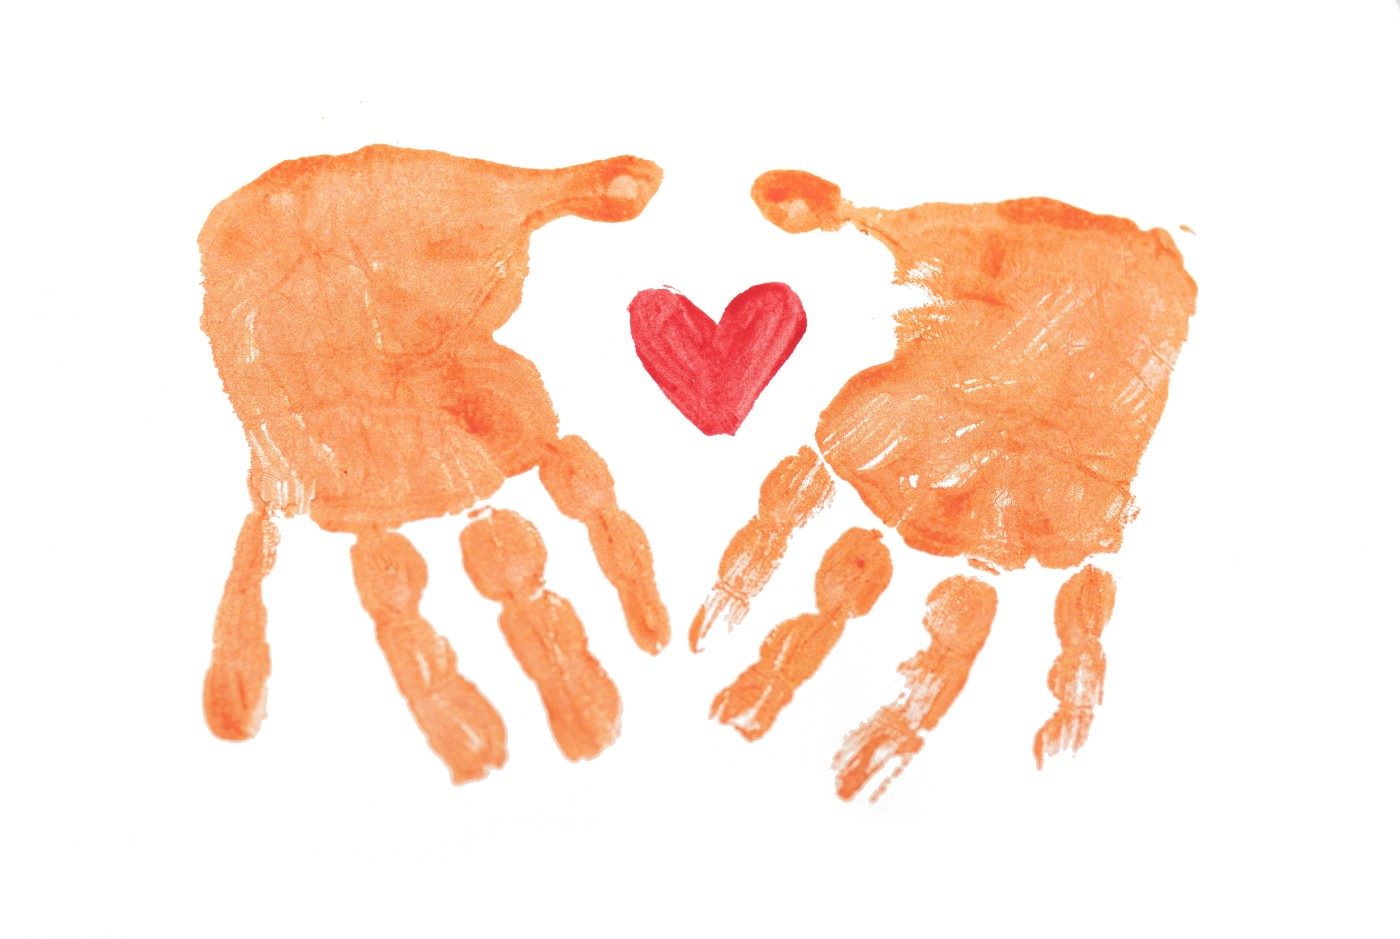 Finger painted hands with heart symbol.